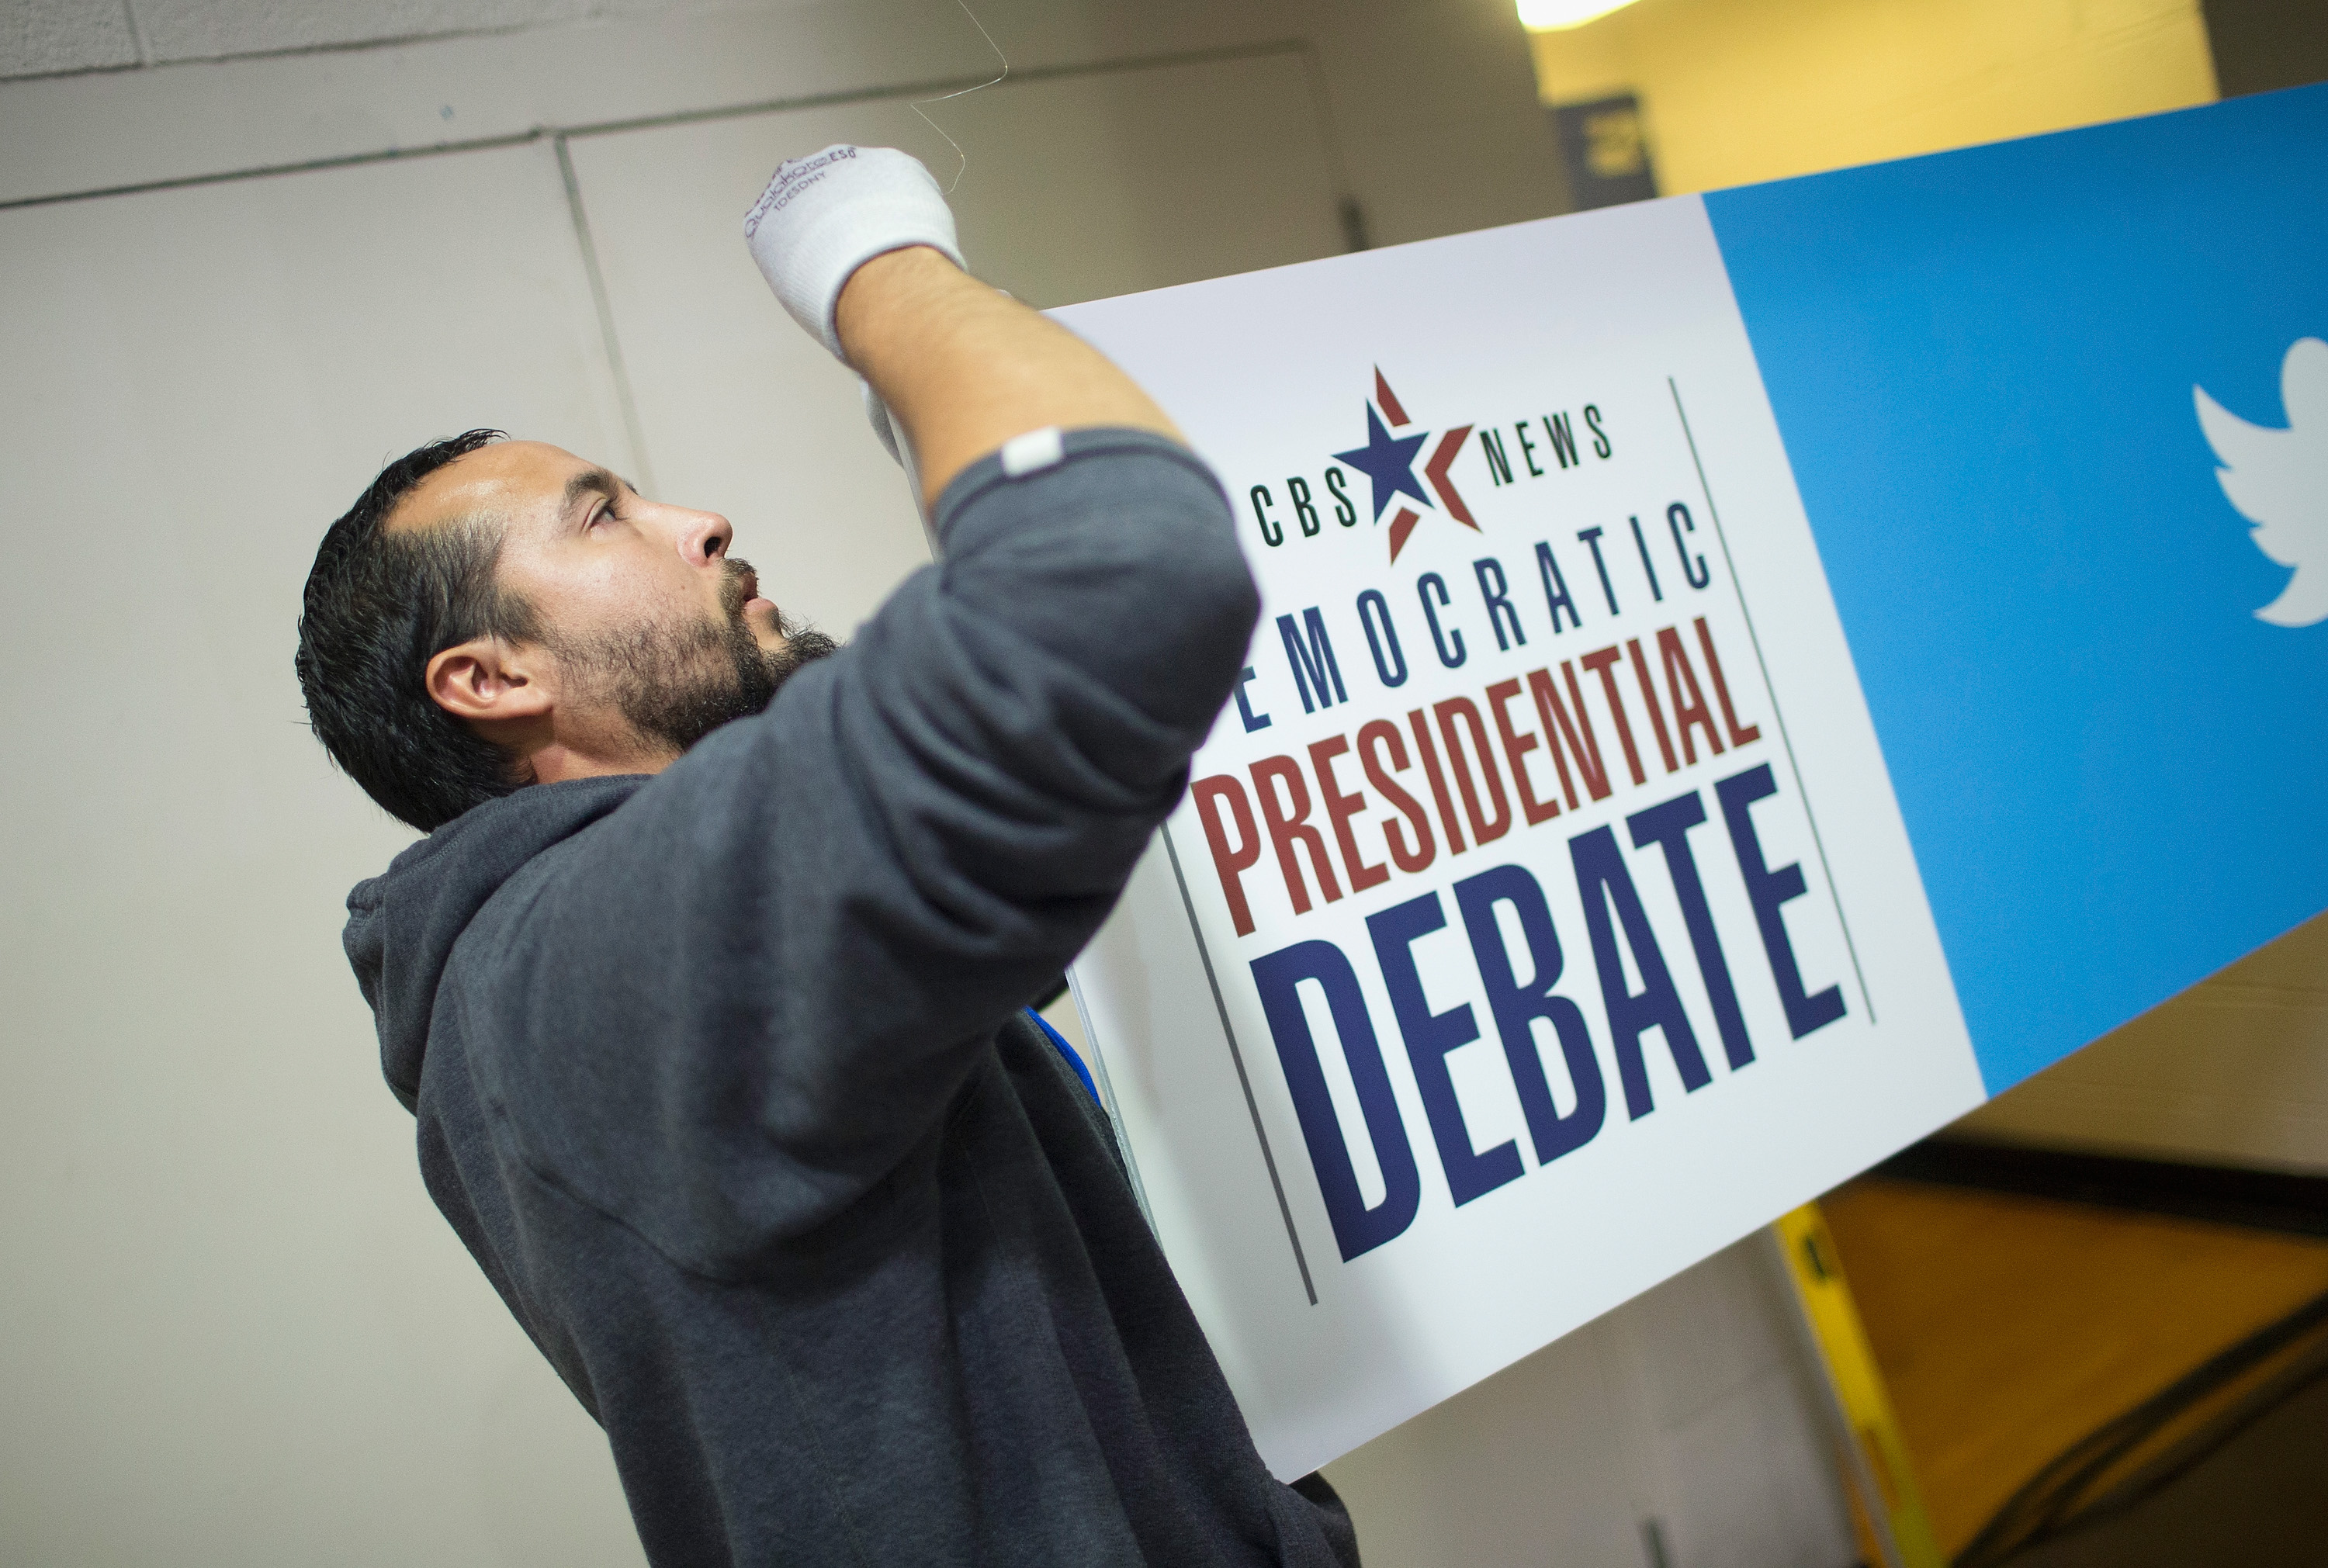 Daniel Rodriguez hangs a sign in the media file center being constructed on the campus of Drake University for tomorrows Democratic presidential debate on November 13, 2015 in Des Moines, Iowa. The debate will be the second for the democratic candidates seeking the nomination for president.